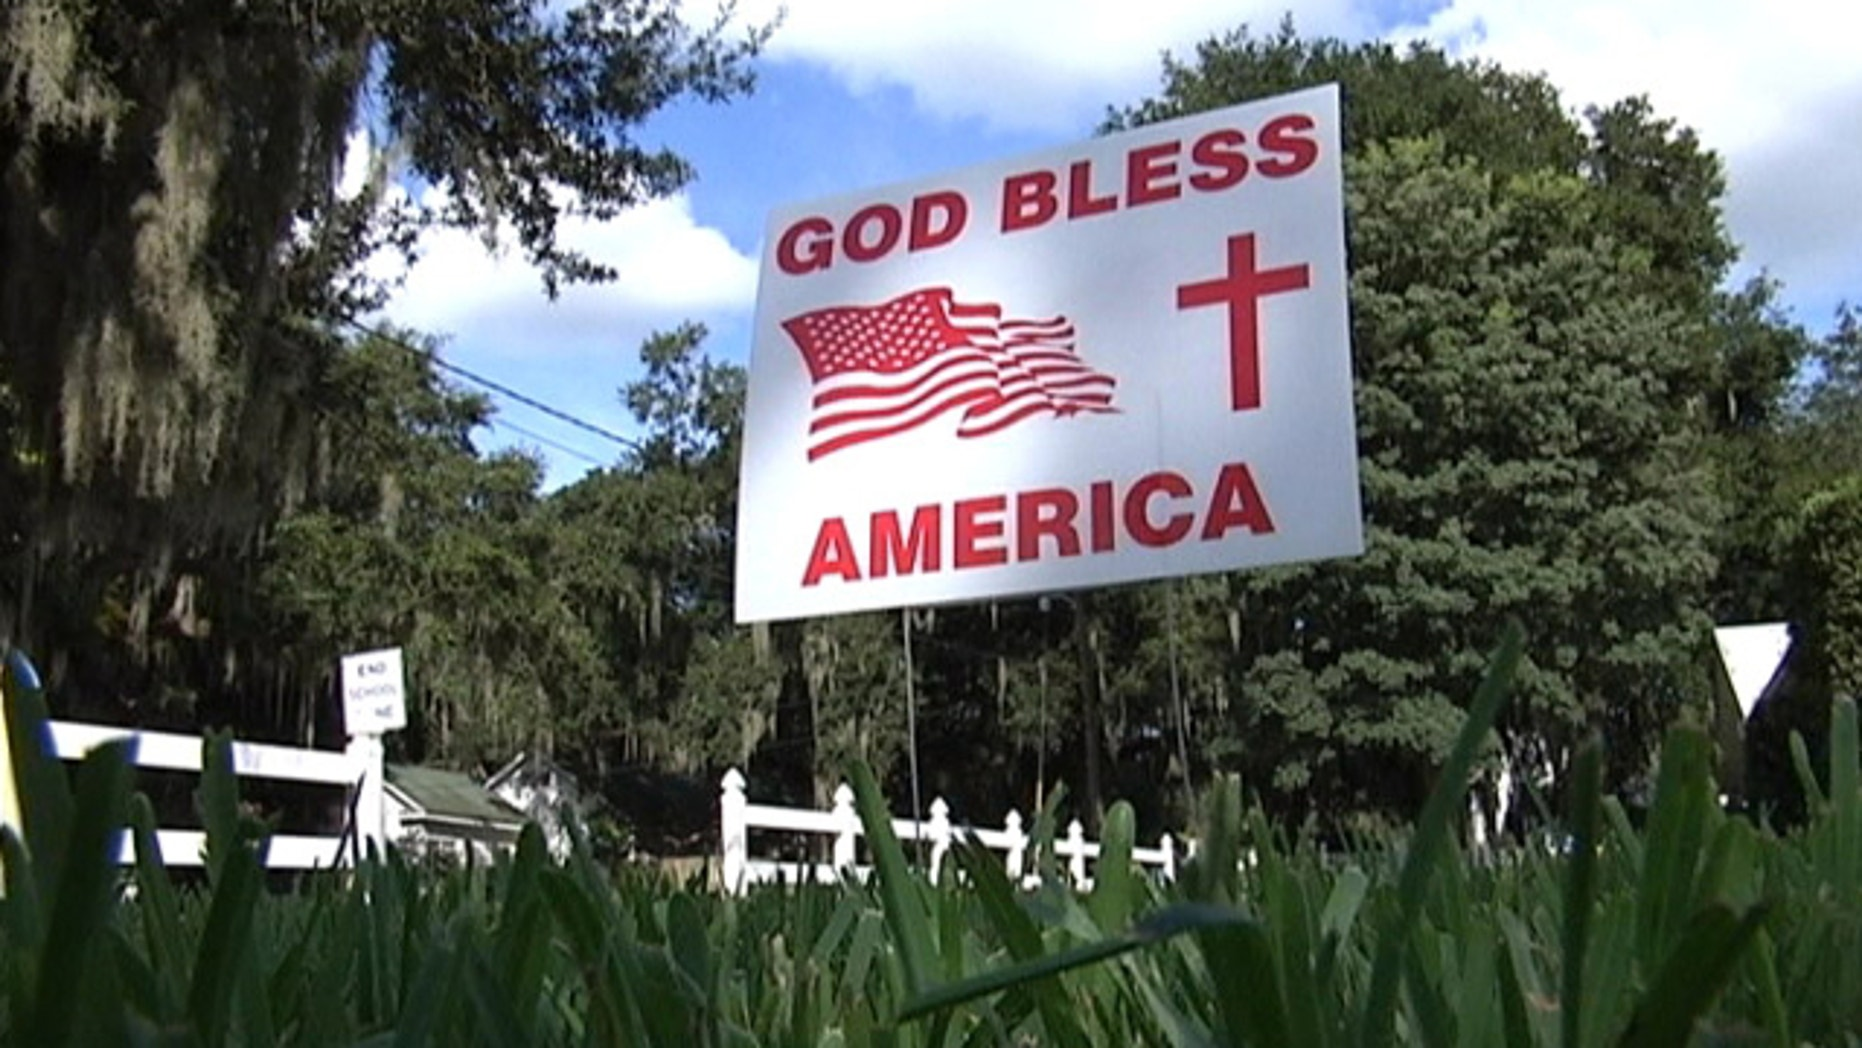 Florida city orders residents to remove 'God Bless America